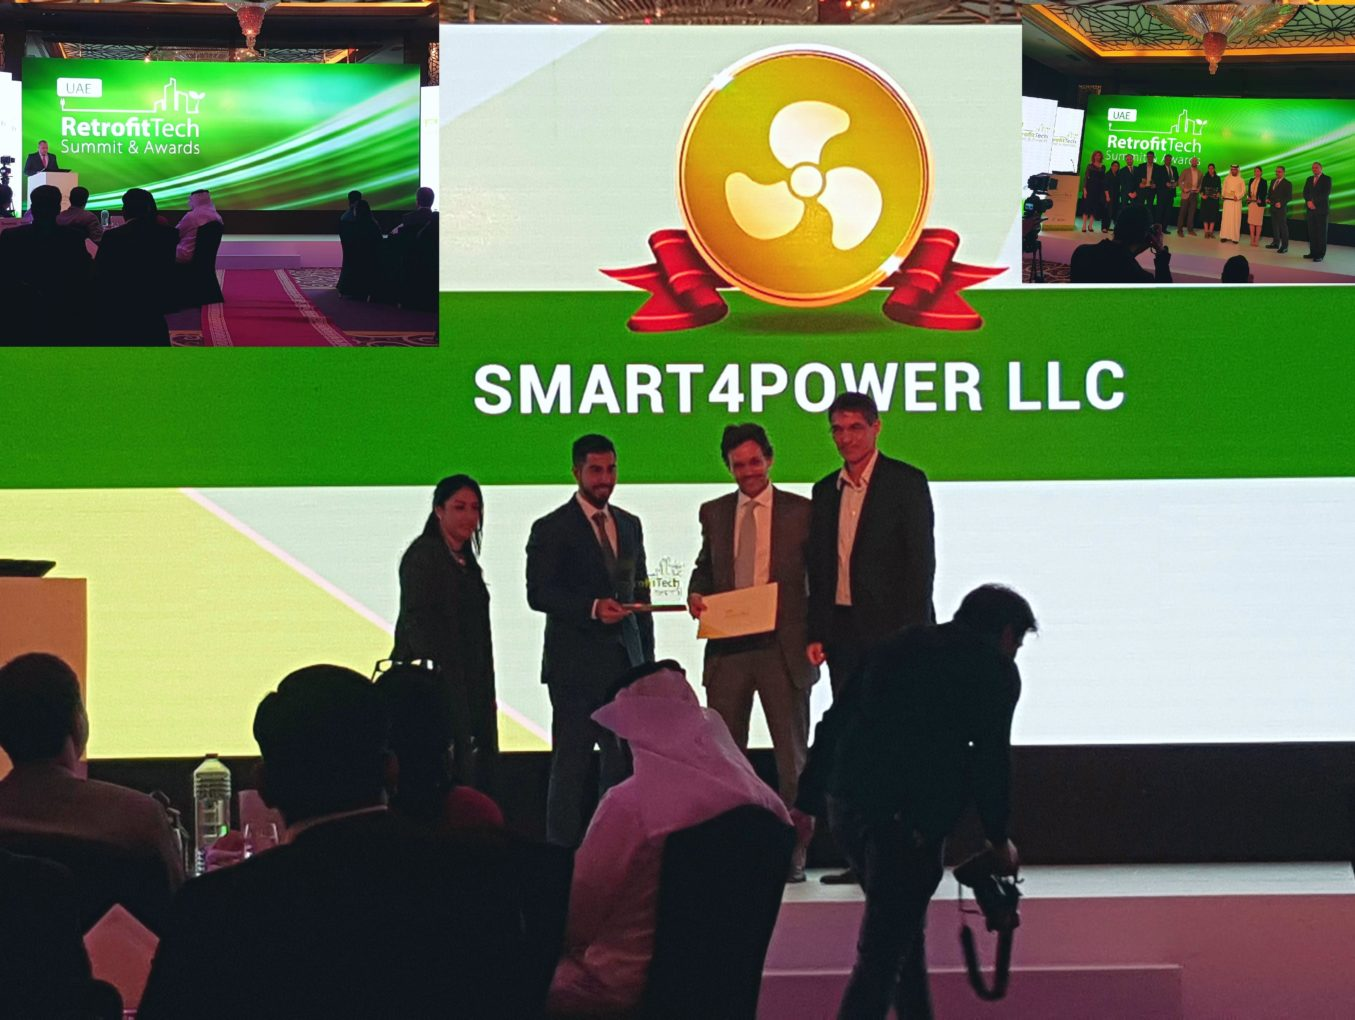 Smart4power wins big at Retrofitech awards 2017